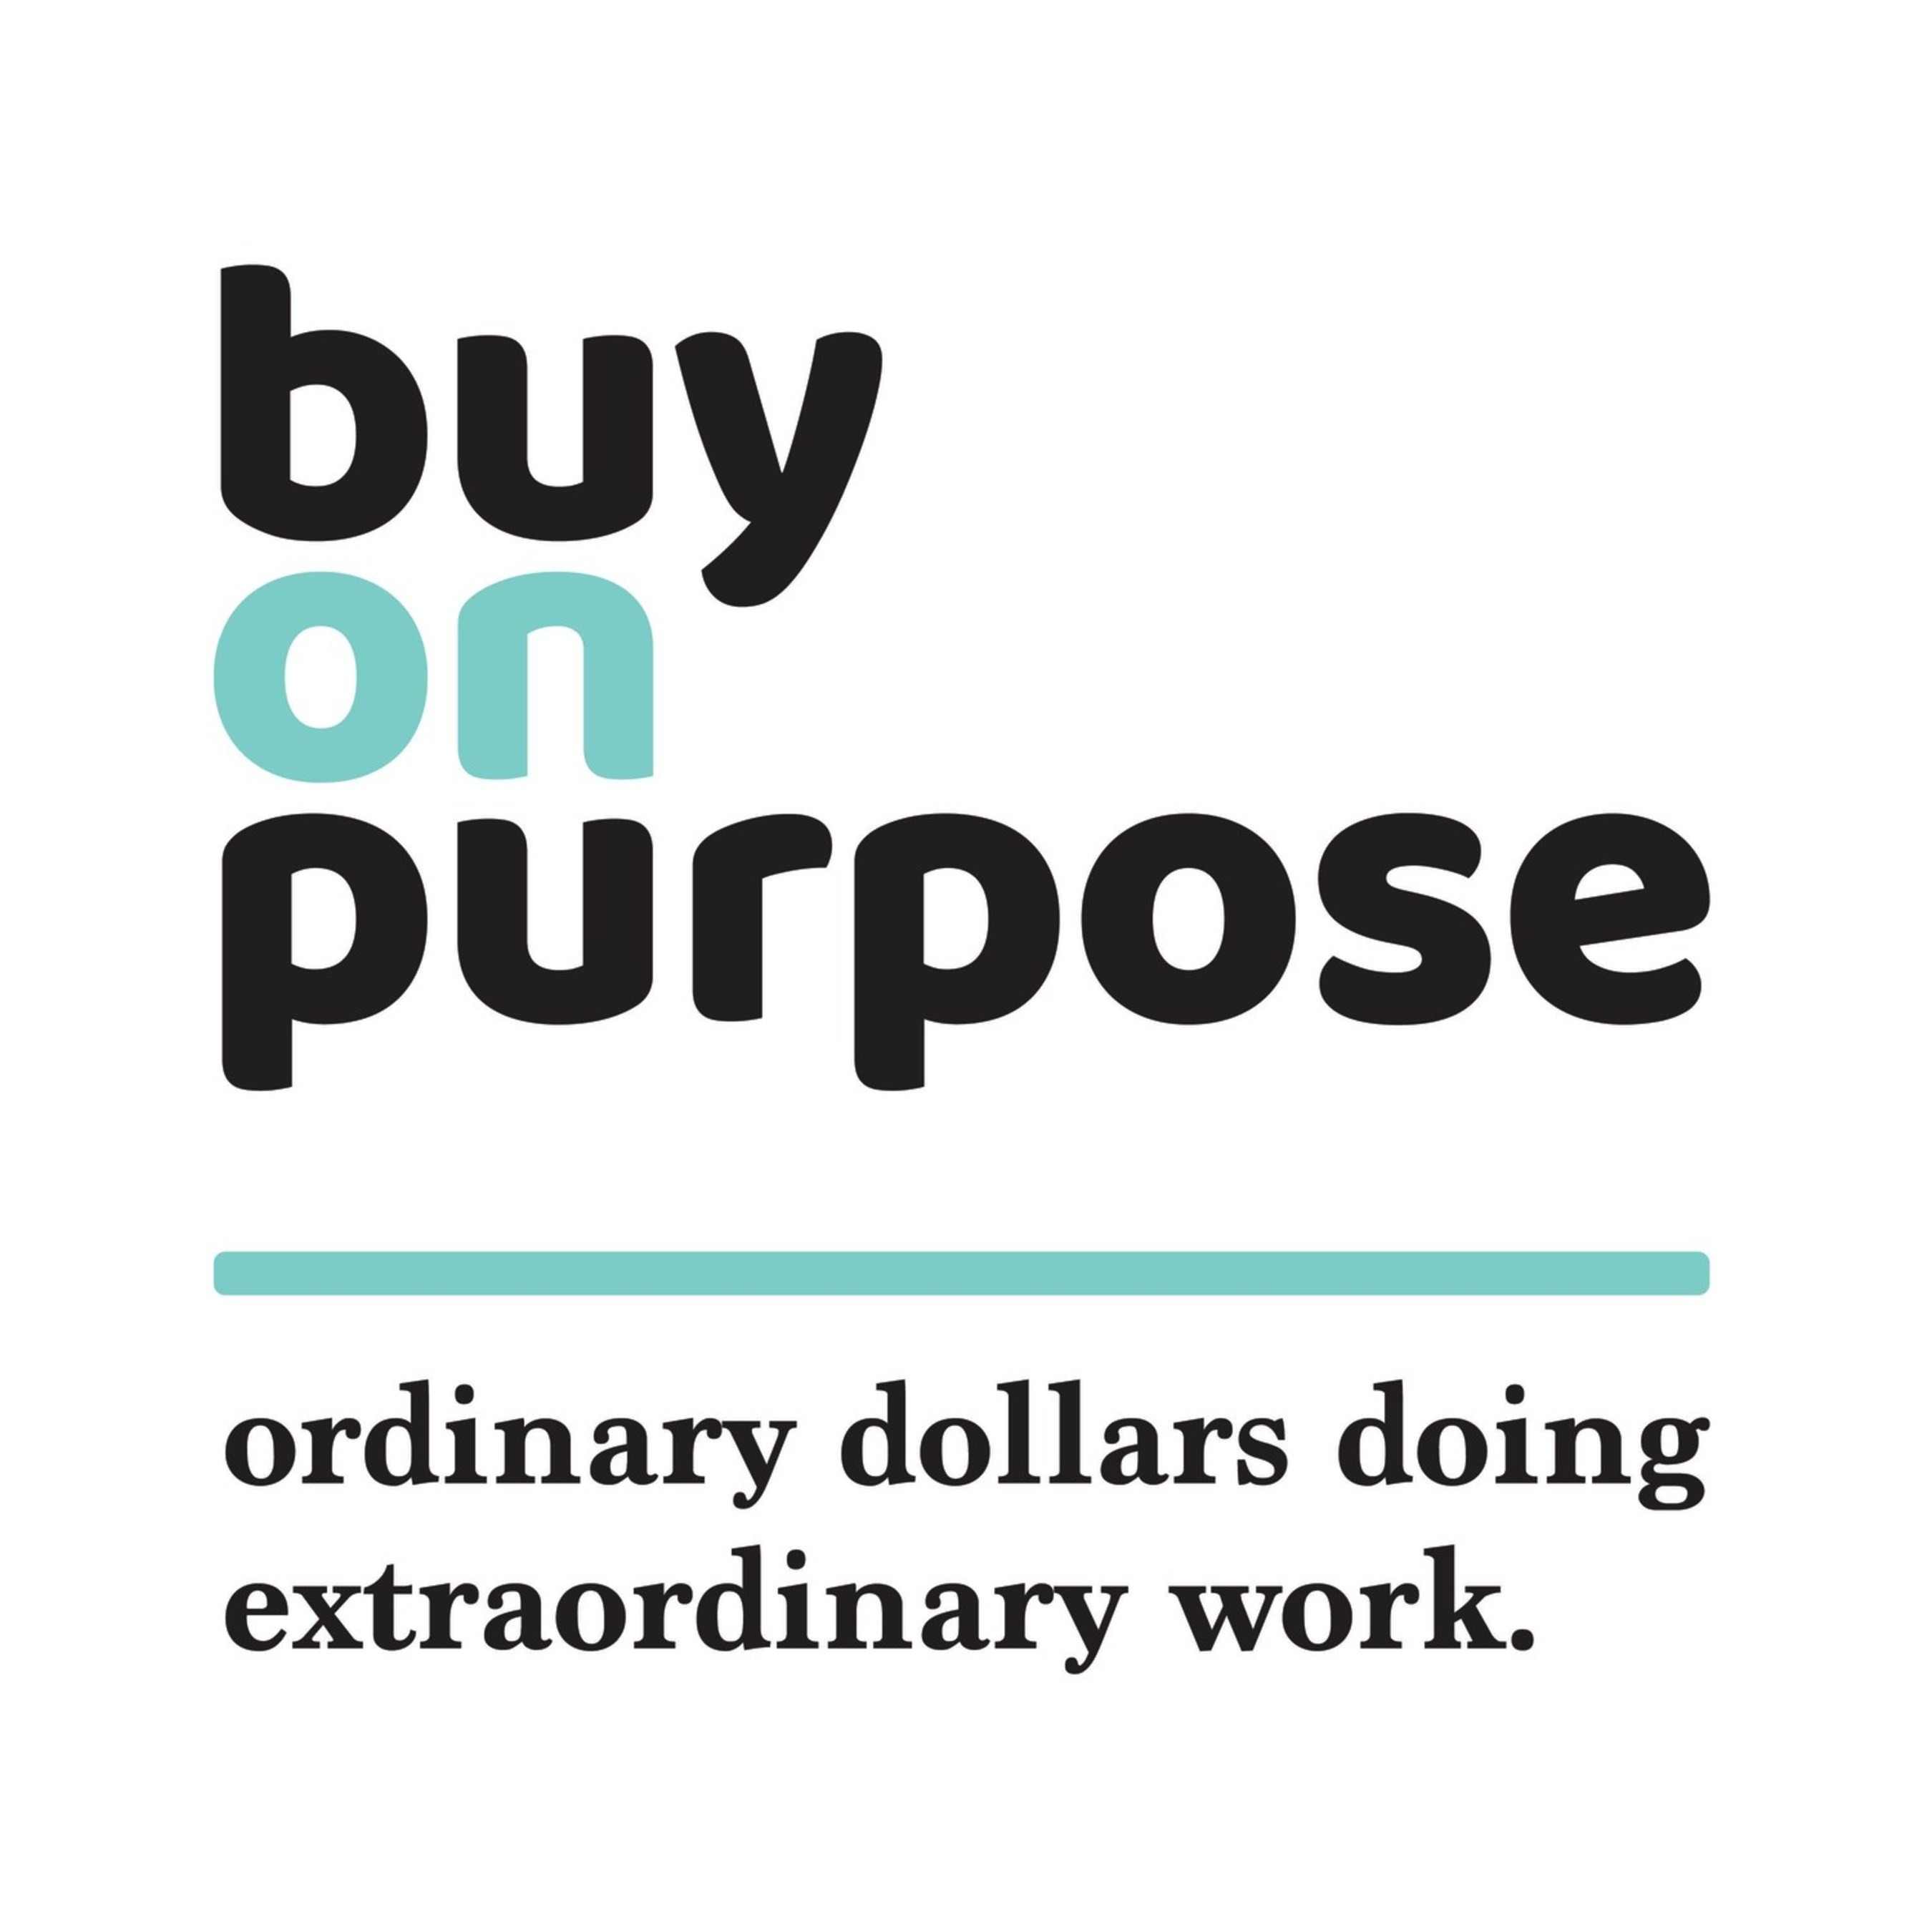 We take ordinary items like office supplies and make them extraordinary in the lives of people. From our purpose of over 50,000 office supplies items, we donate each order 50% of our profit to charities fighting for people who can not help themselves. We donate to fight human trafficking, provide clean water, and assist with adoption and orphanage.